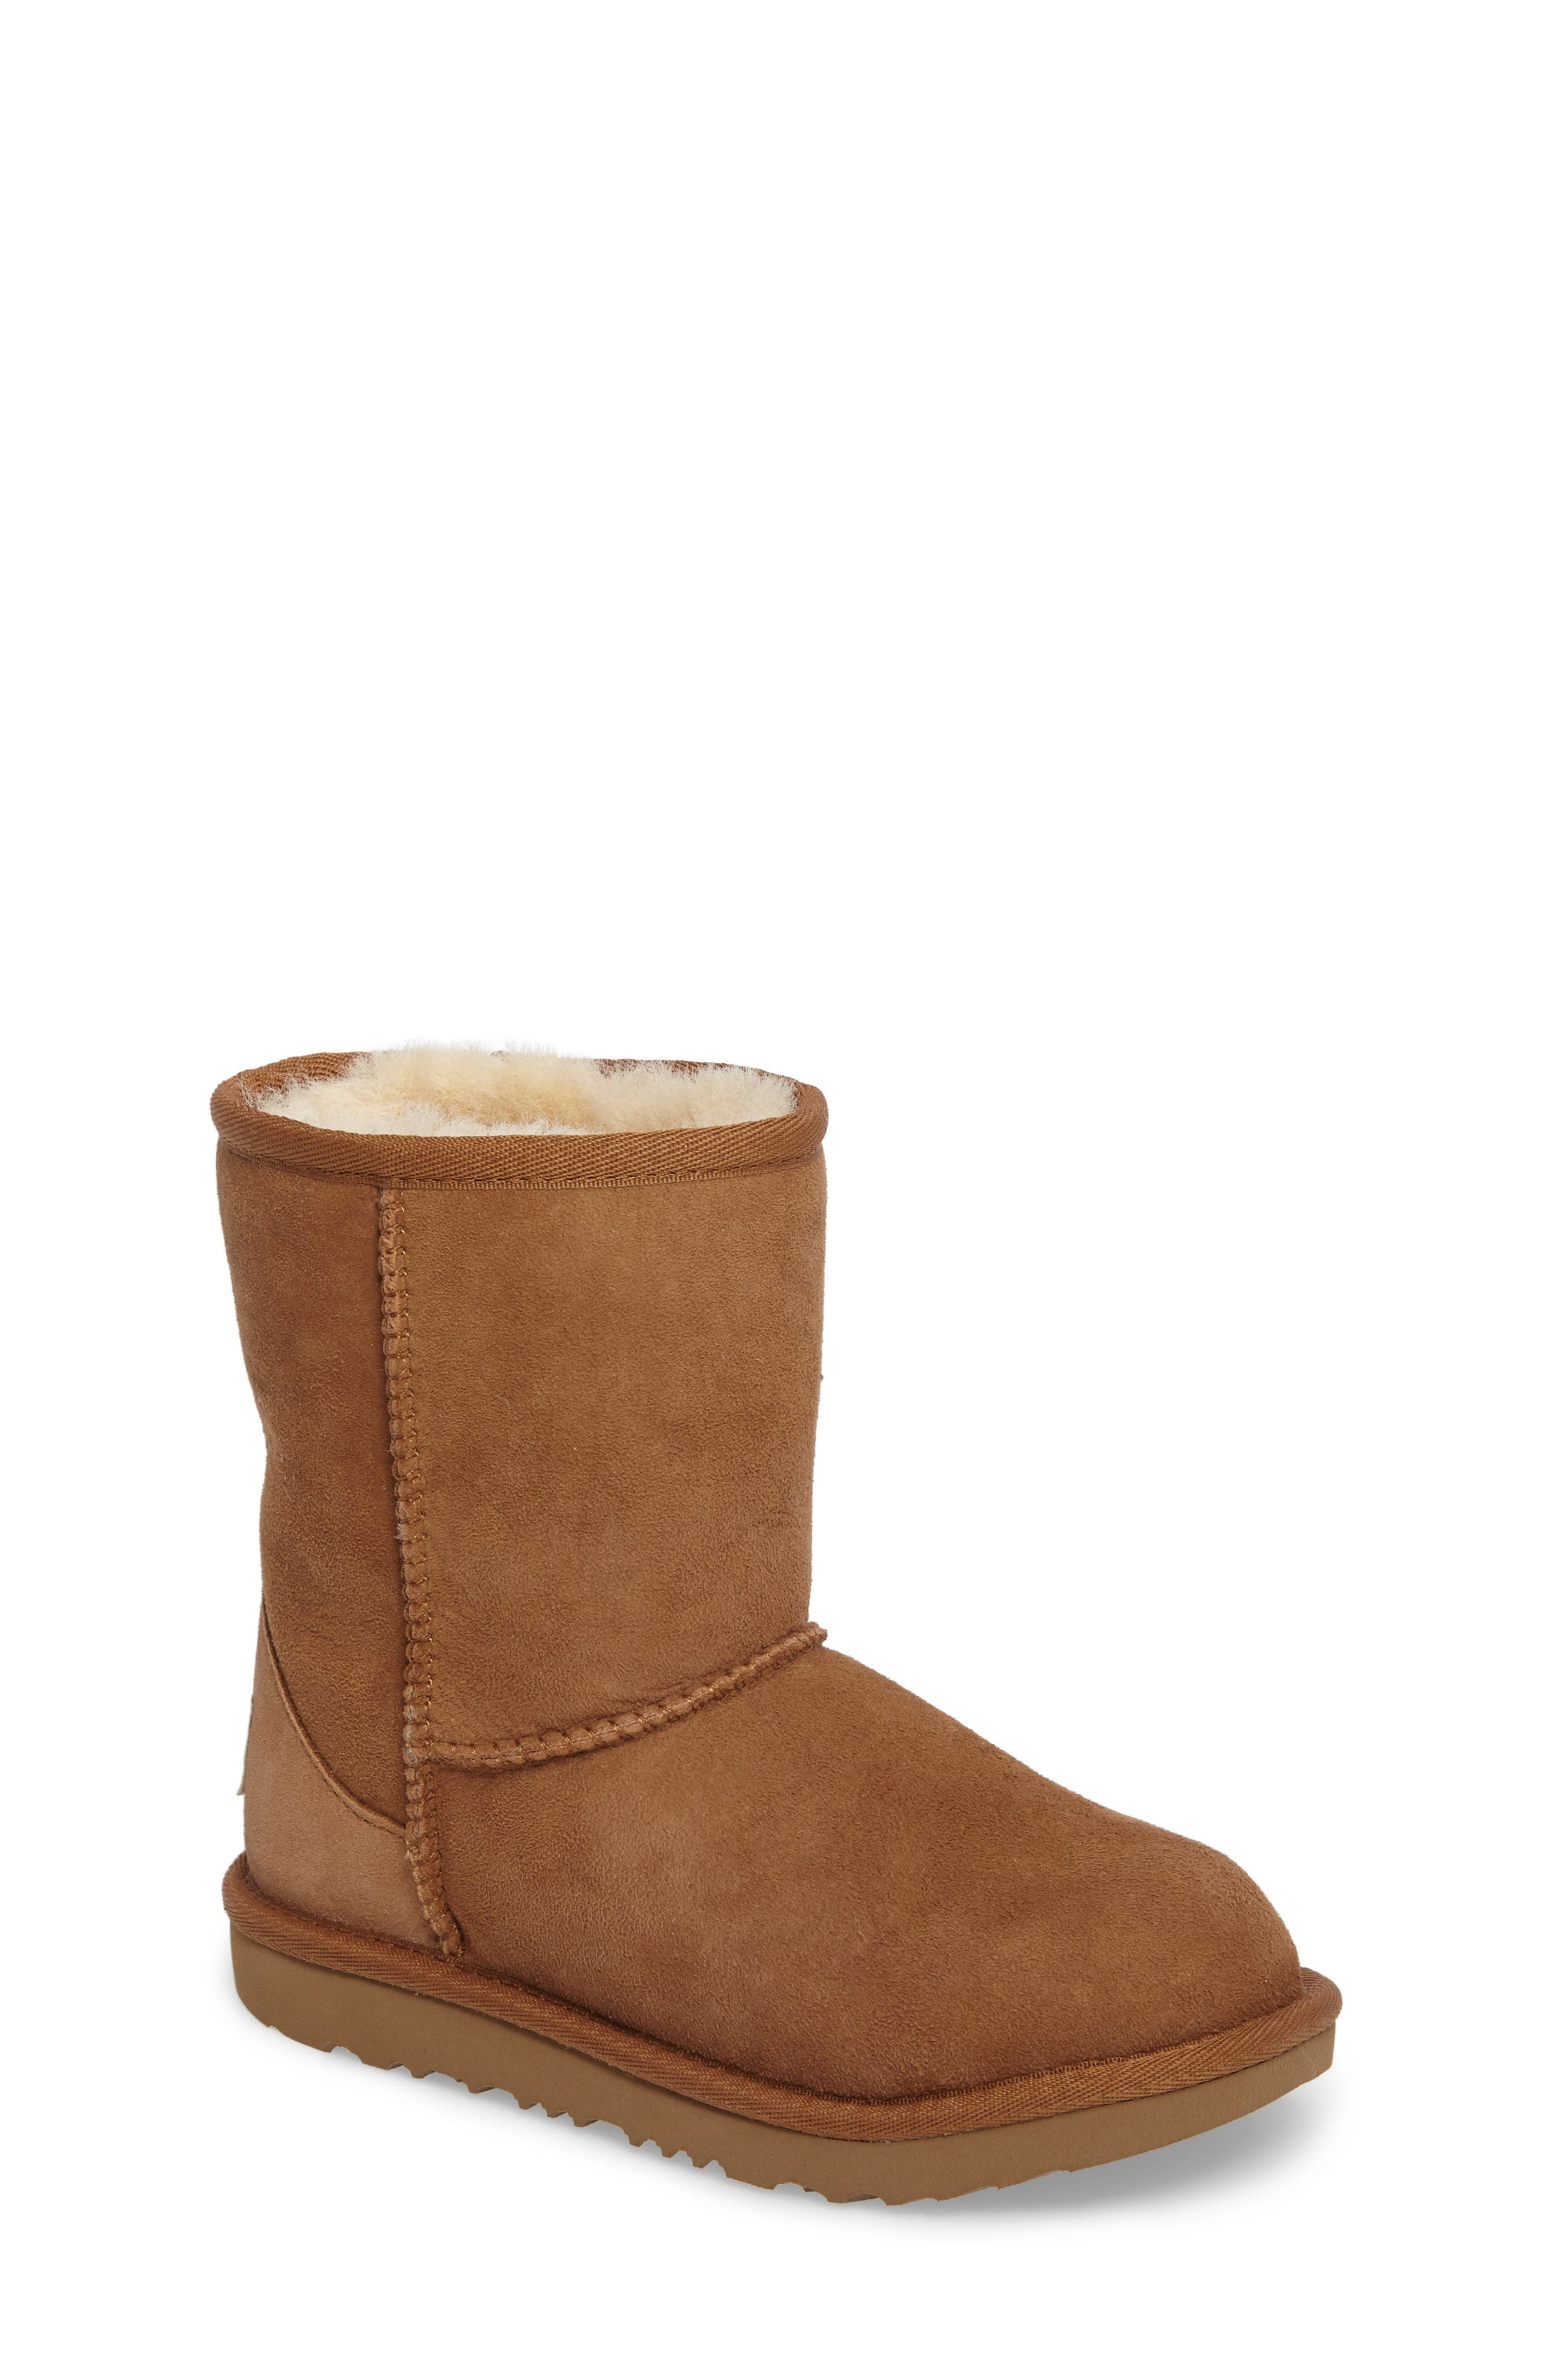 UGG® Classic Short II Water Resistant Genuine Shearling Boot (Walker, Toddler, Little Kid & Big Kid)